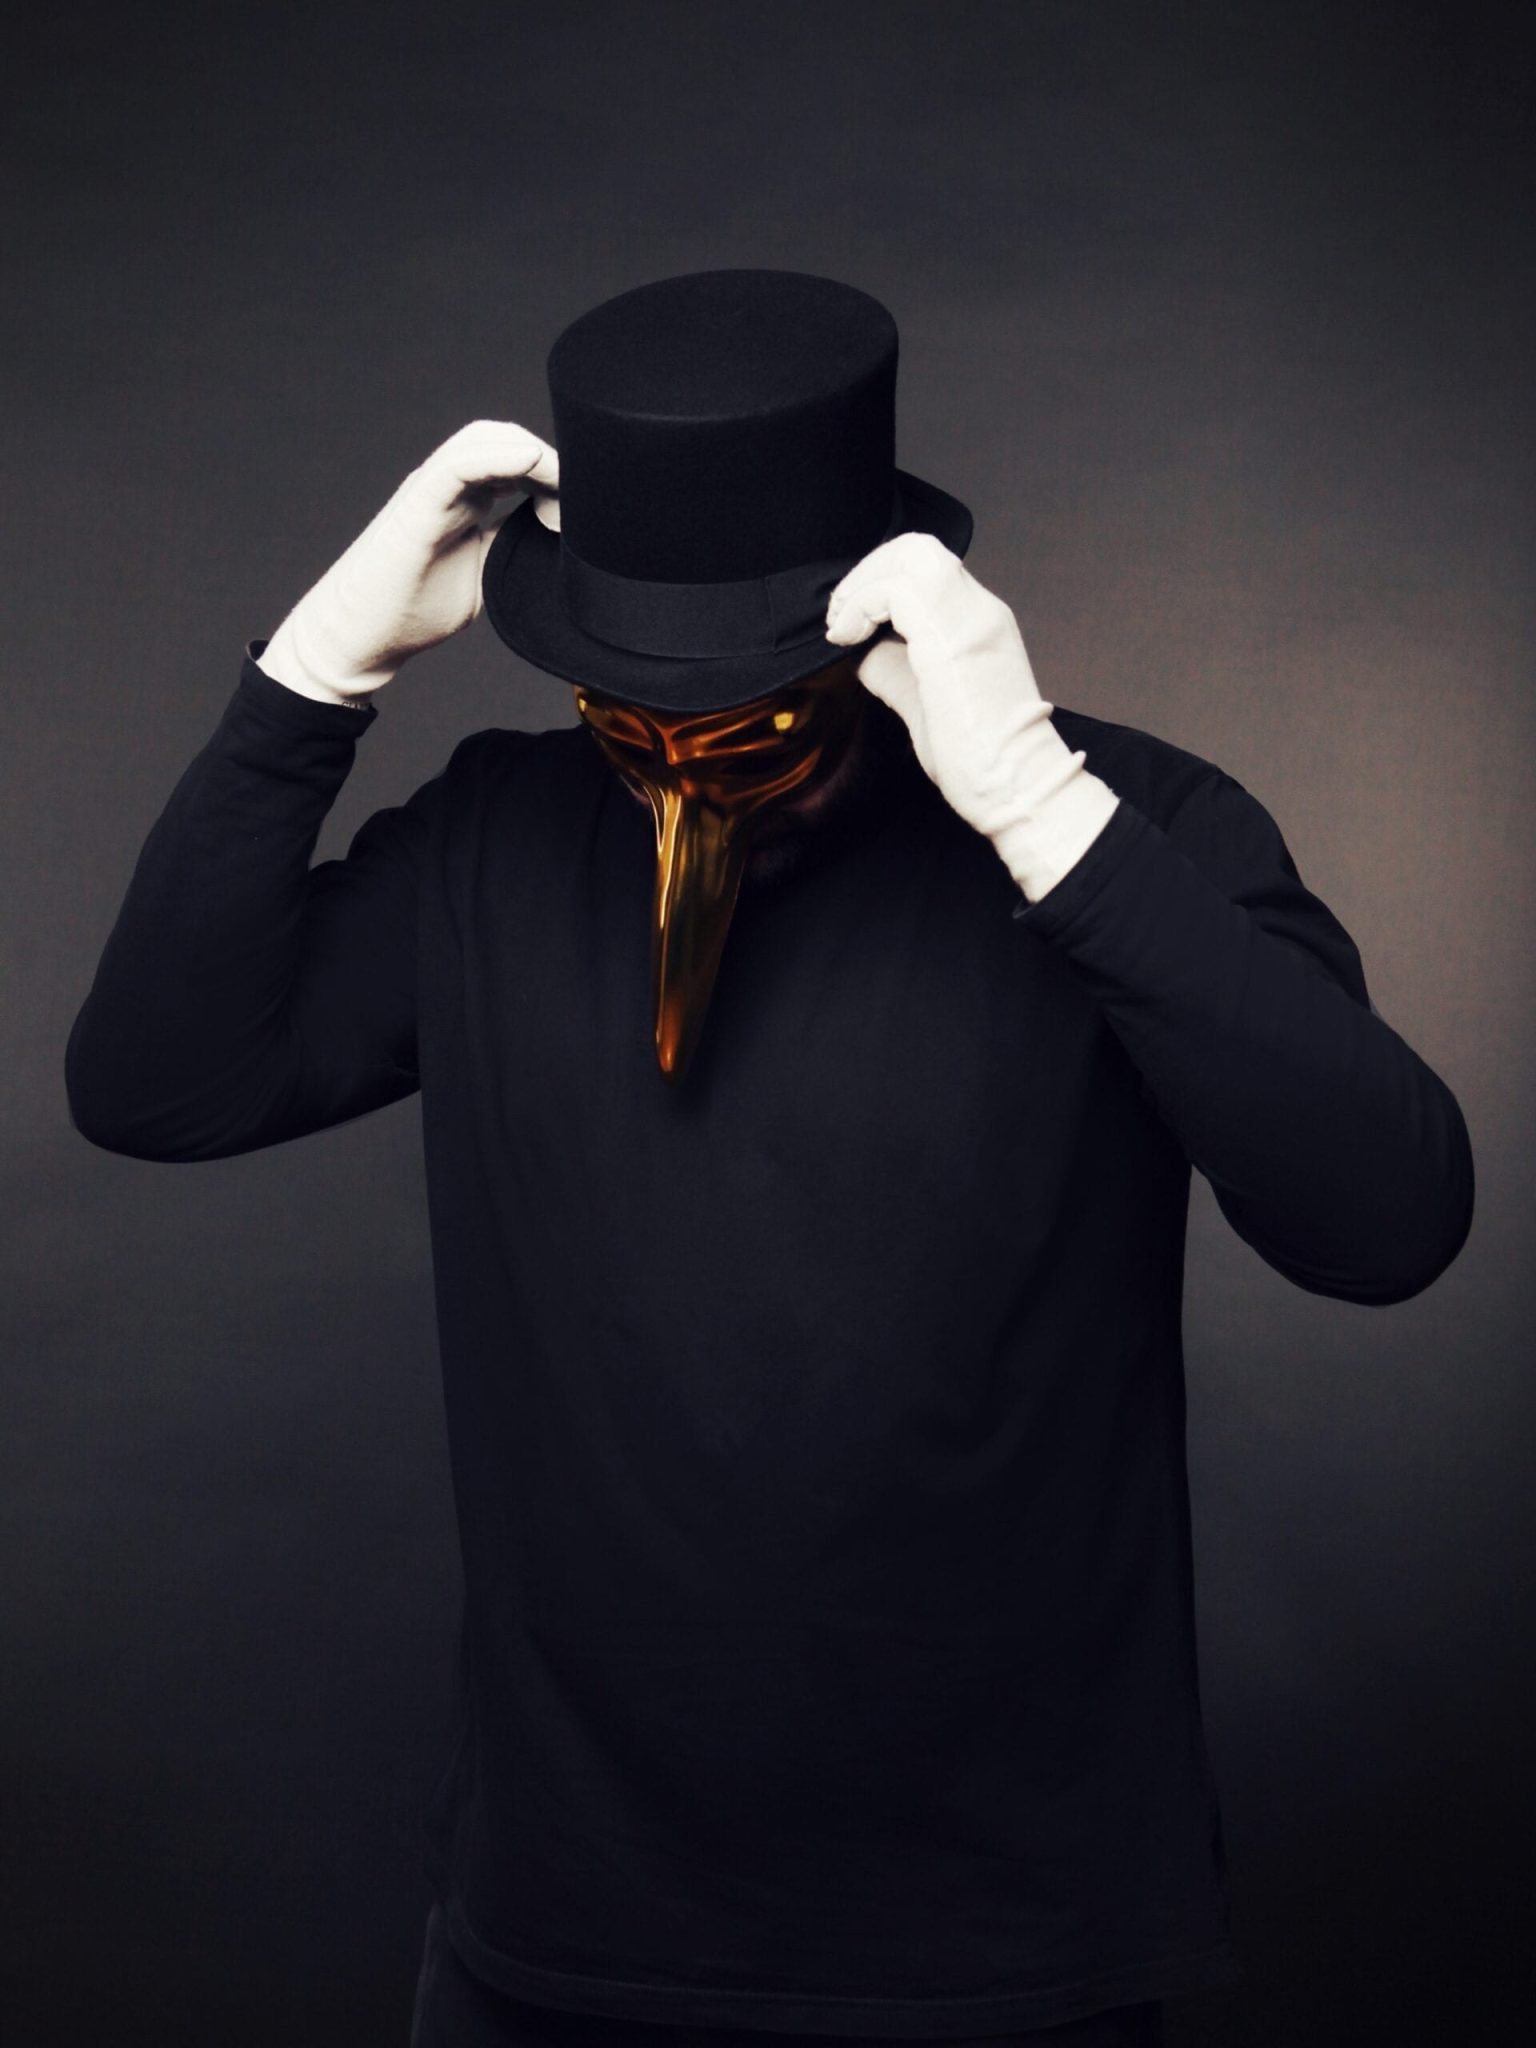 Claptone Announces Weekly Lineups for 'THE MASQUERADE' - Jon Hopkins, Maya Jane Coles and Faithless amongst Artists added to the Masked Man's First Ibiza Residency